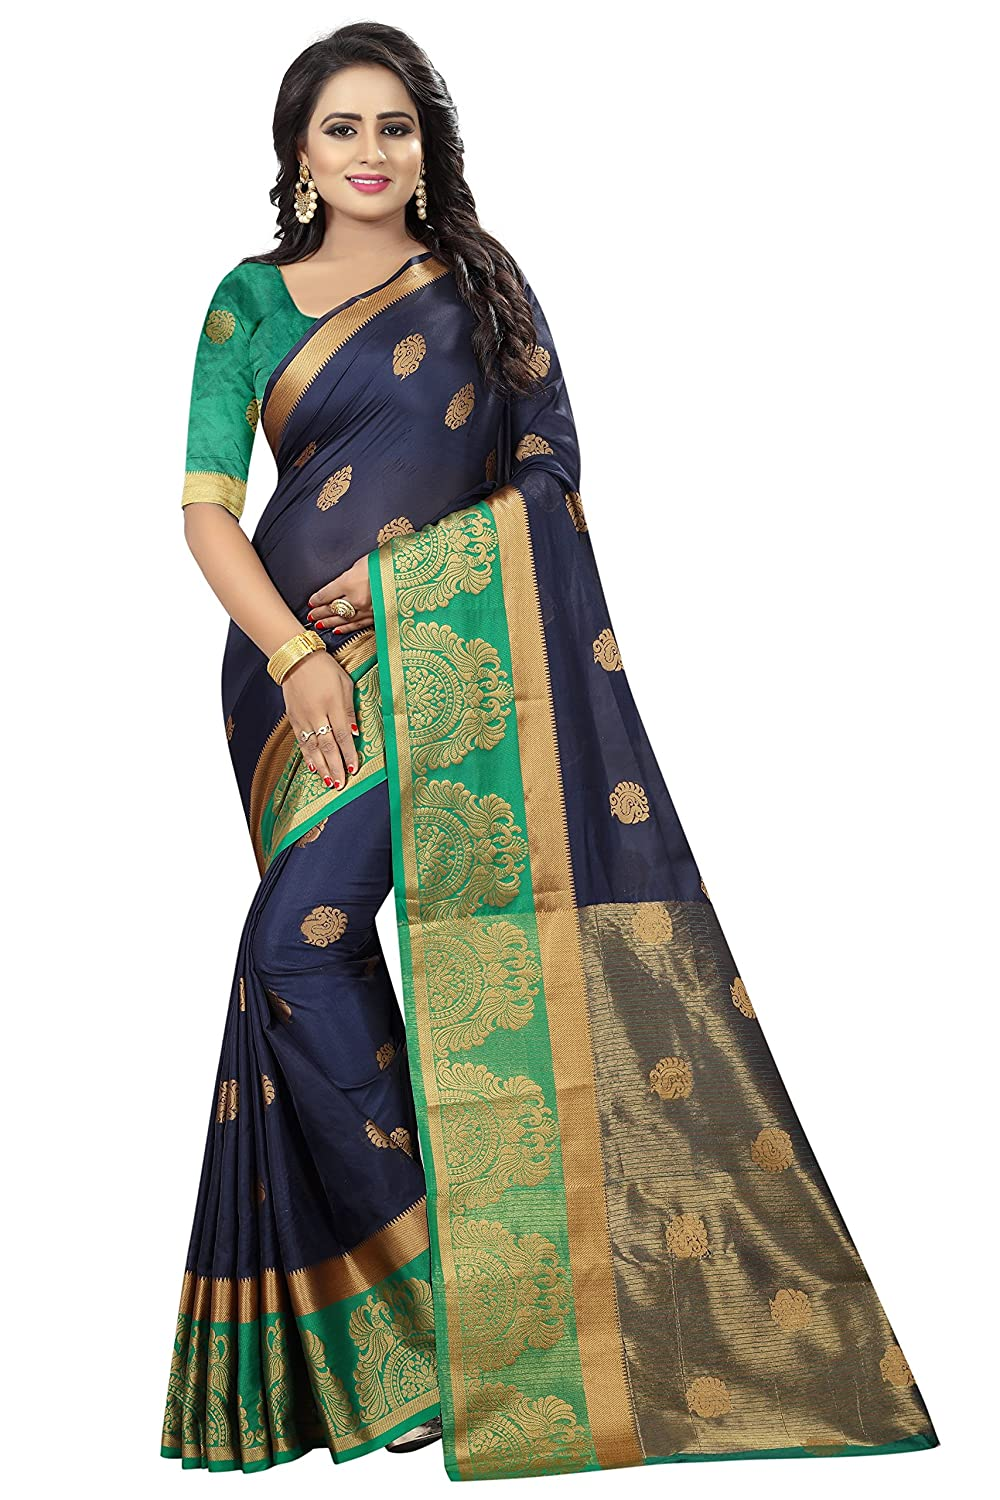 Green Color Synthetic with Blouse Piece Saree